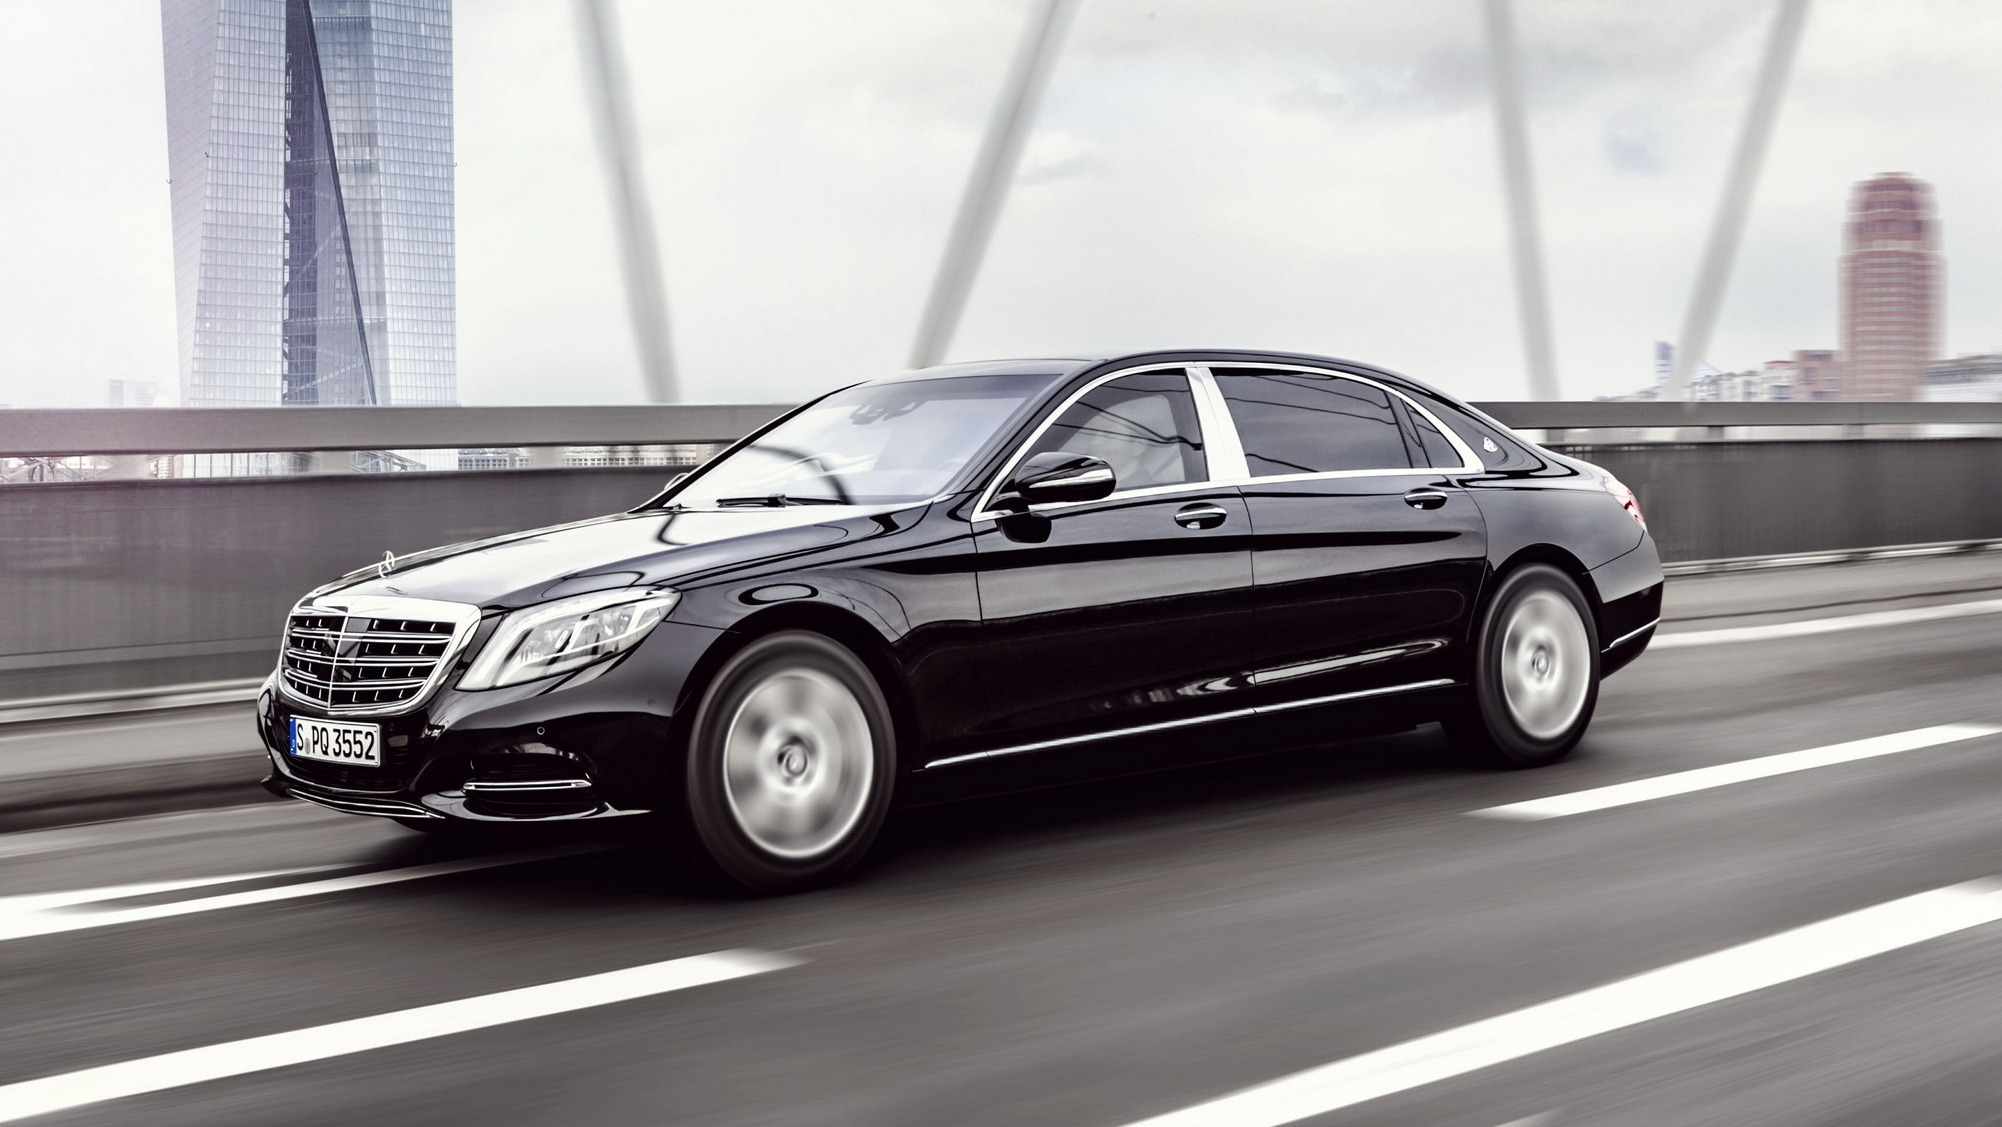 2016 mercedes maybach s600 guard review gallery top speed. Black Bedroom Furniture Sets. Home Design Ideas